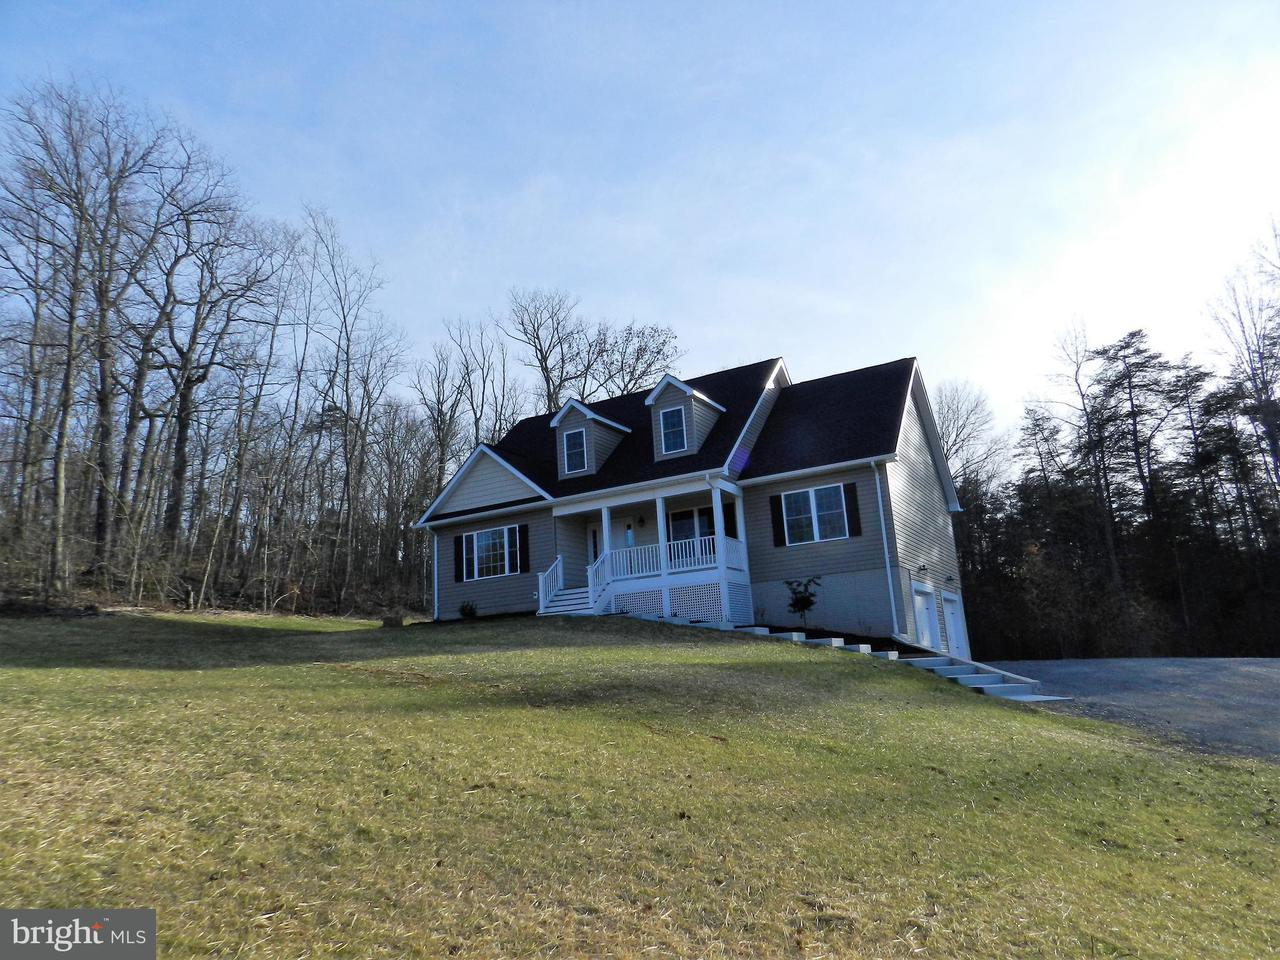 Single Family Home for Sale at SARAHS WAY SARAHS WAY Culpeper, Virginia 22701 United States